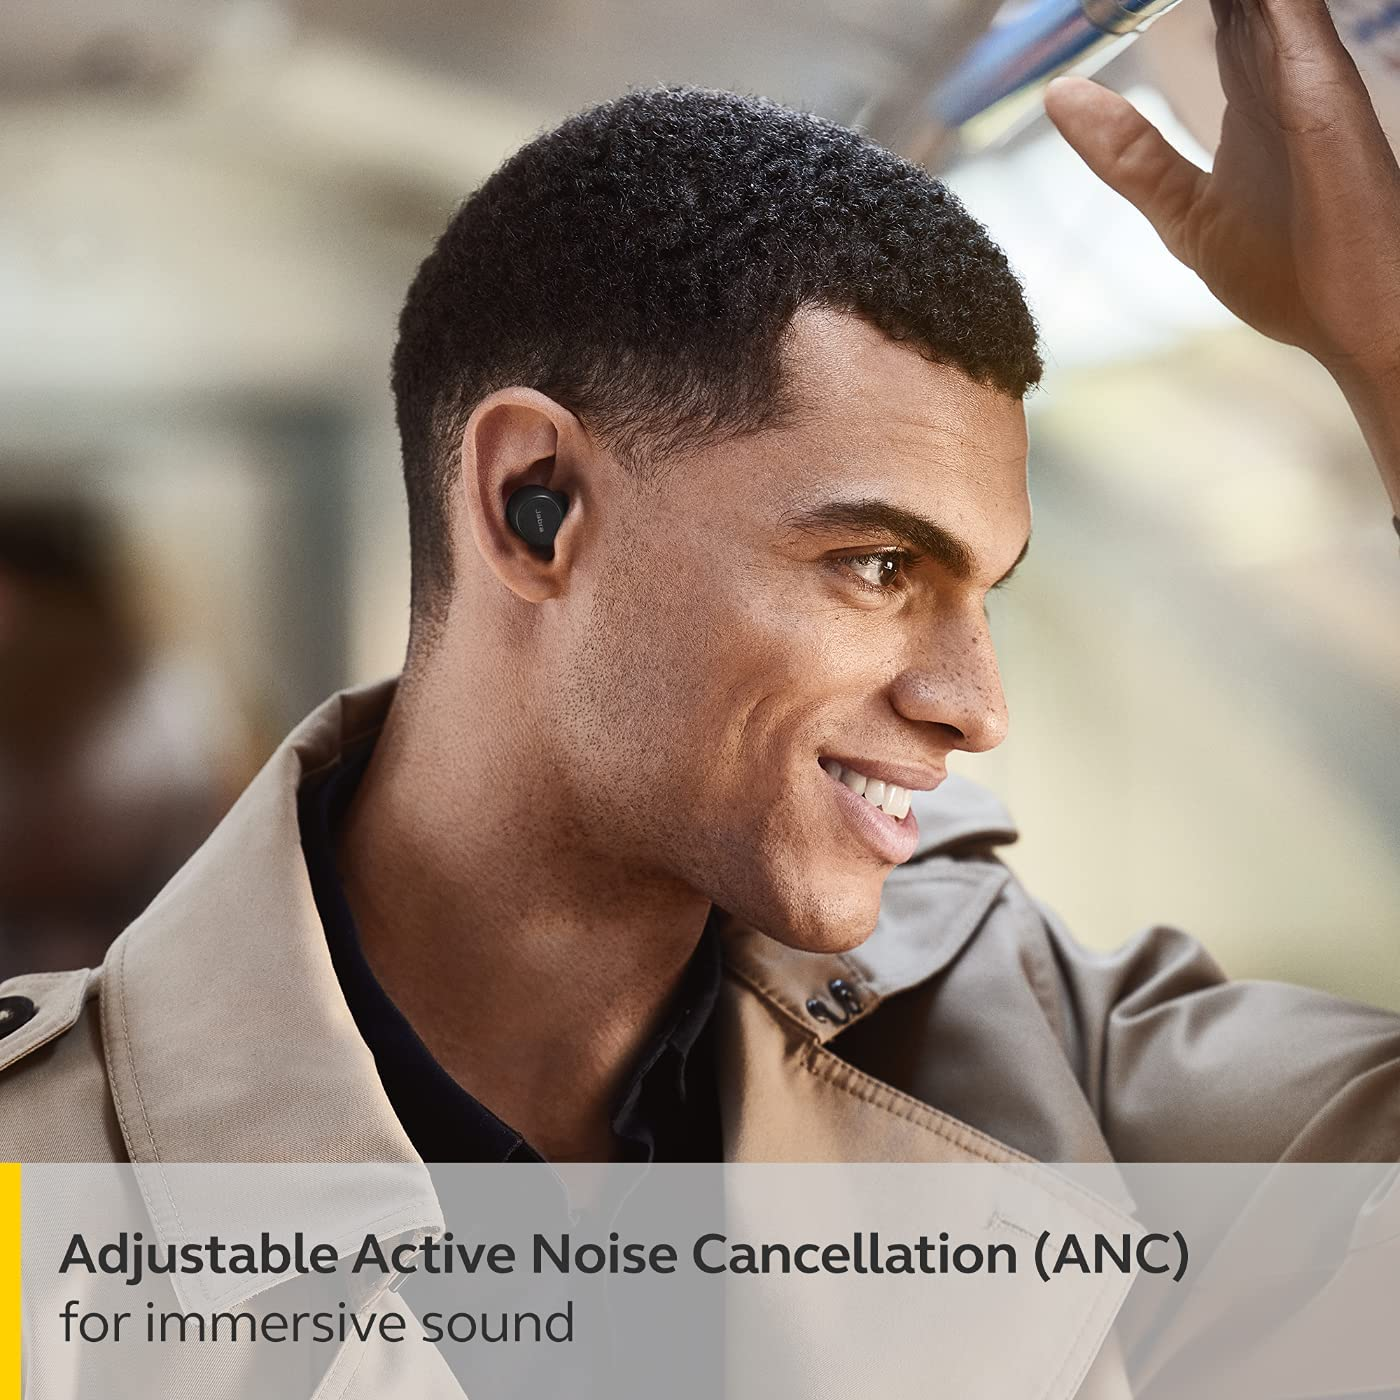 Jabra Elite 7 Pro In Ear Bluetooth Earbuds - Adjustable Active Noise Cancellation True Wireless Buds in a compact design with Jabra MultiSensor Voice Technology for Clear Calls - Black